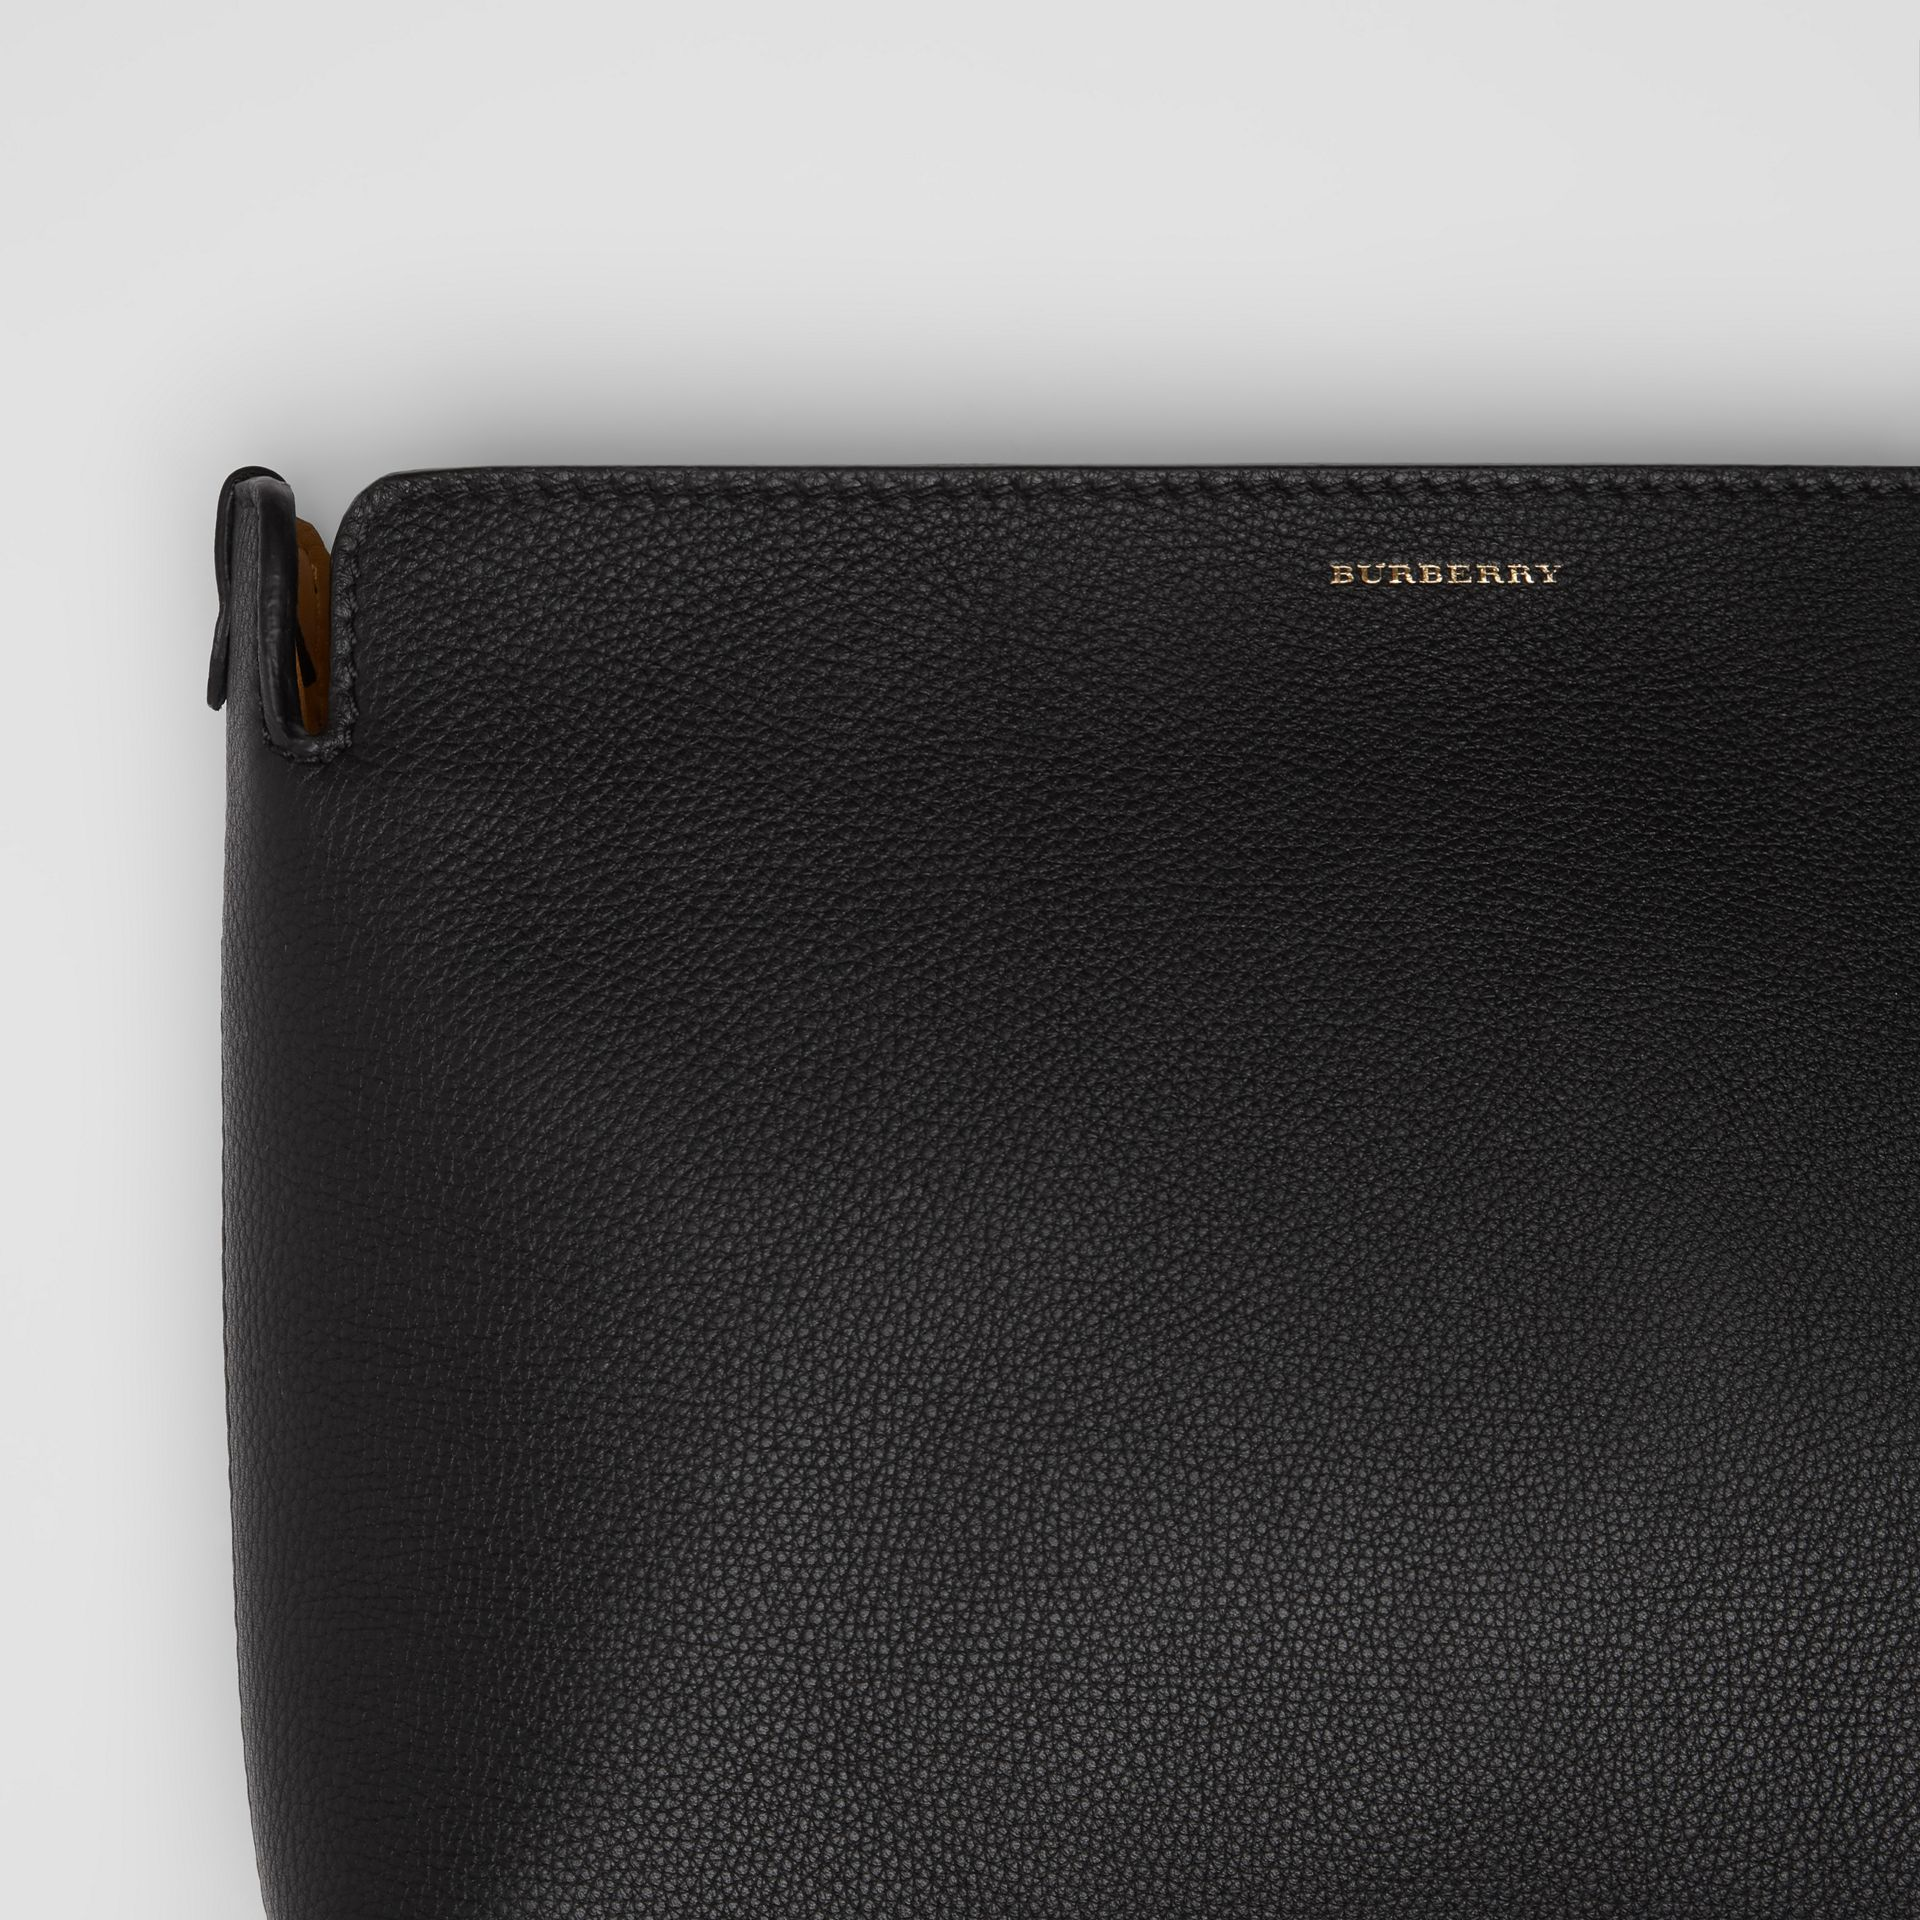 Medium Tri-tone Leather Clutch in Black/sea Green - Women | Burberry United Kingdom - gallery image 1